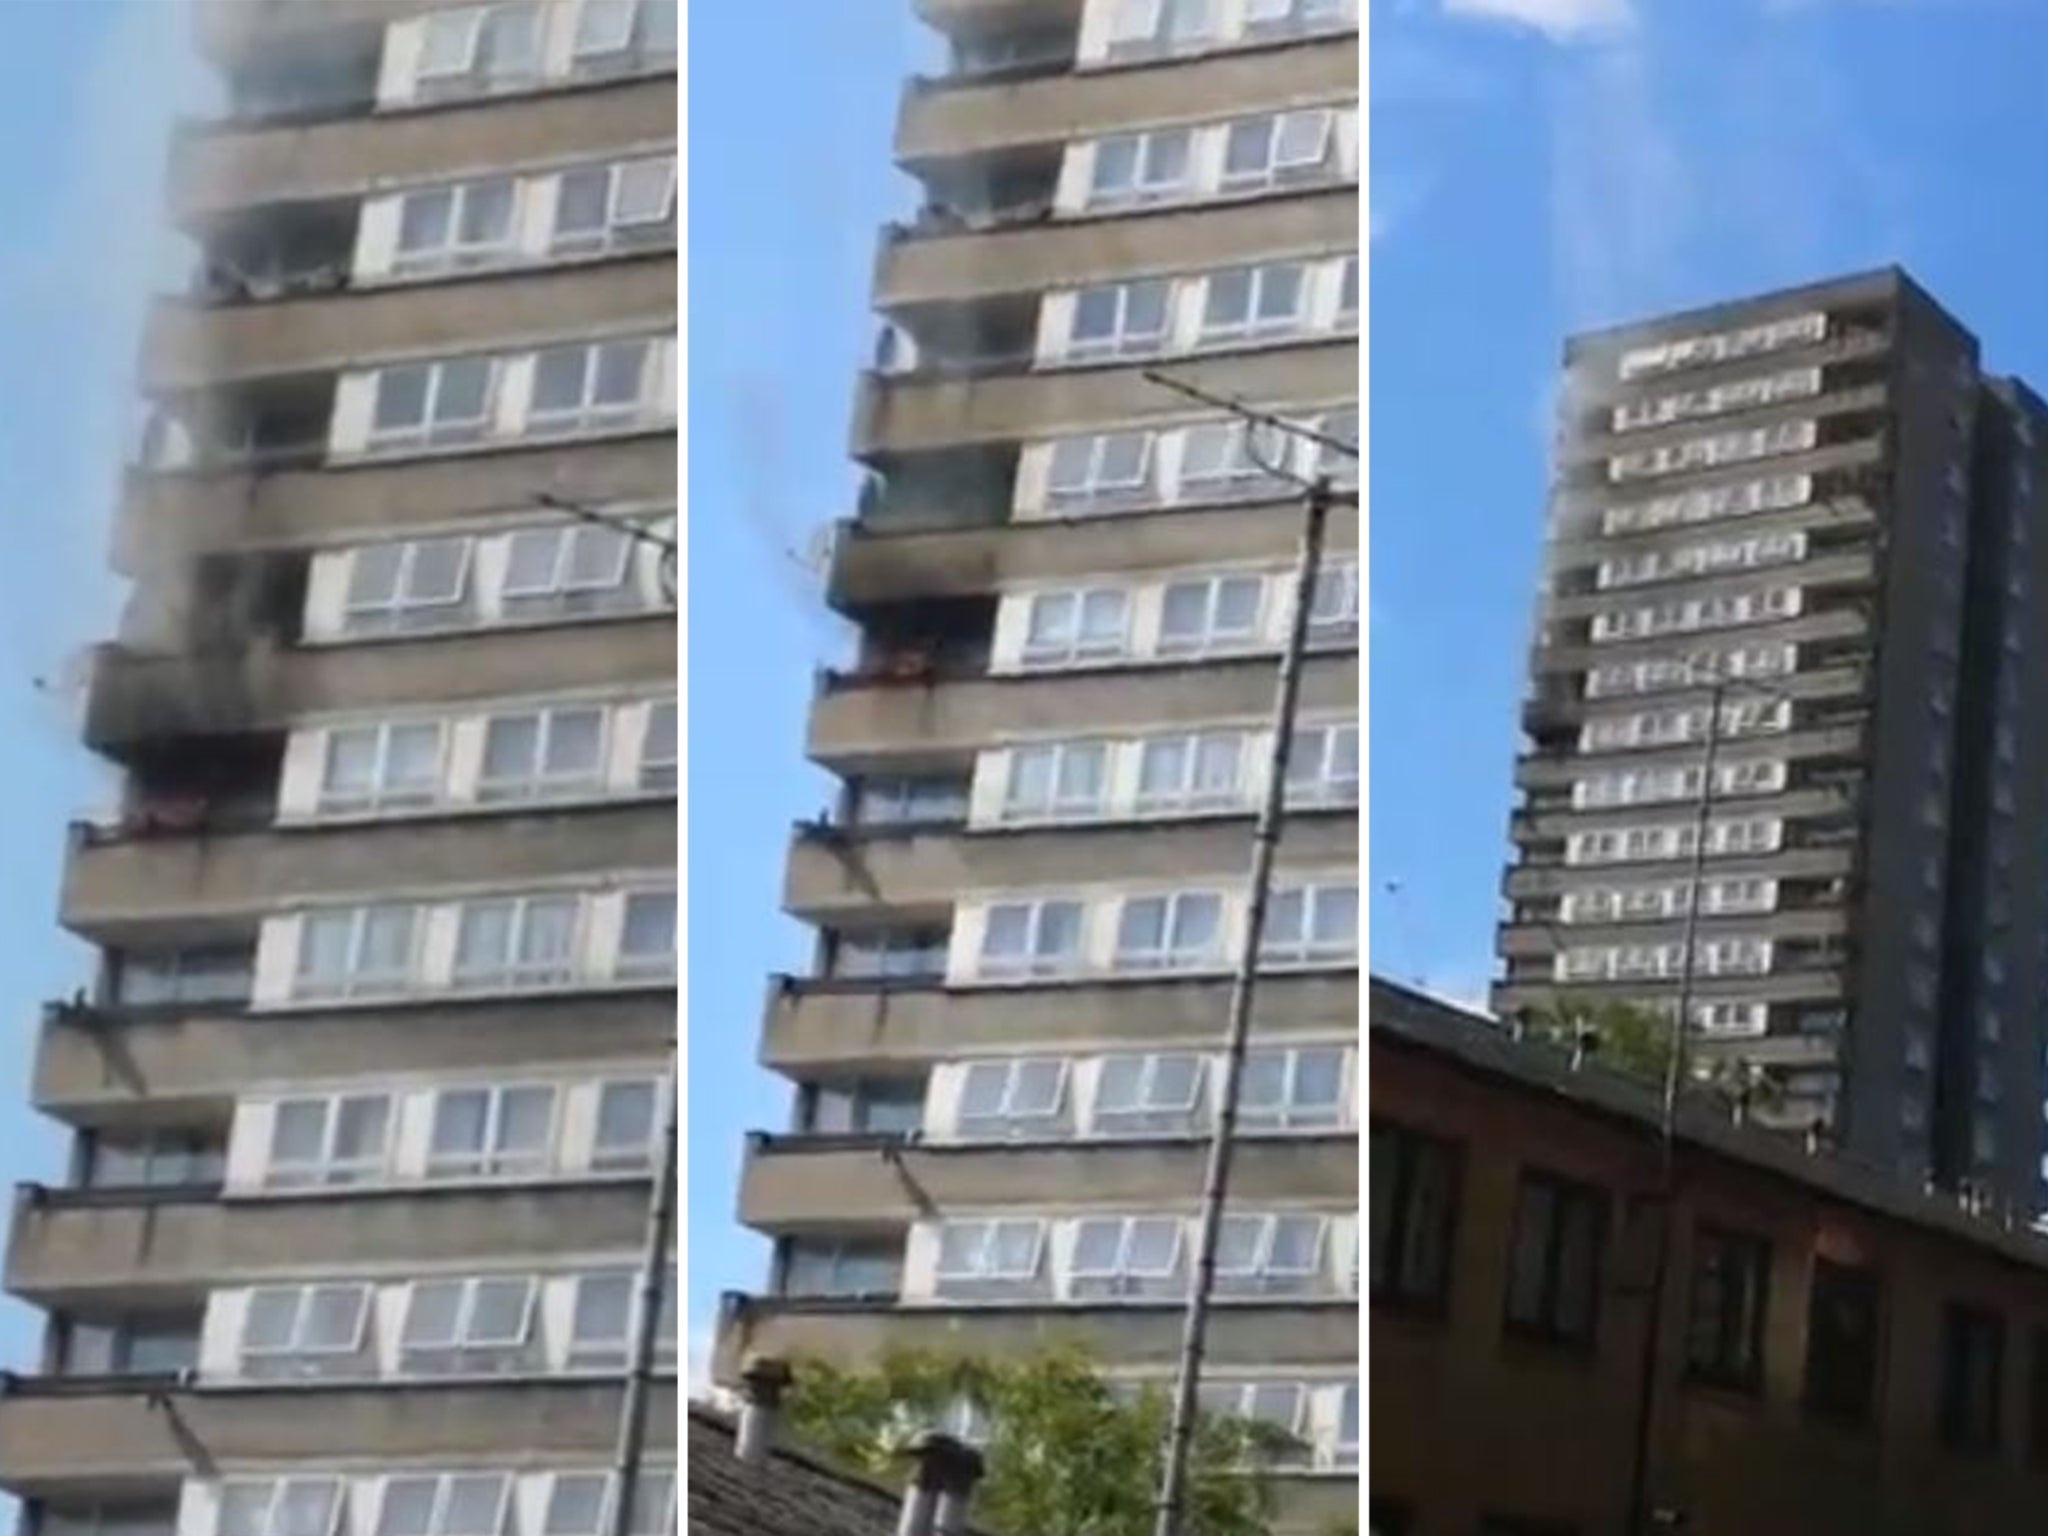 Notting Hill fire: Blaze breaks out in London tower block near Grenfell